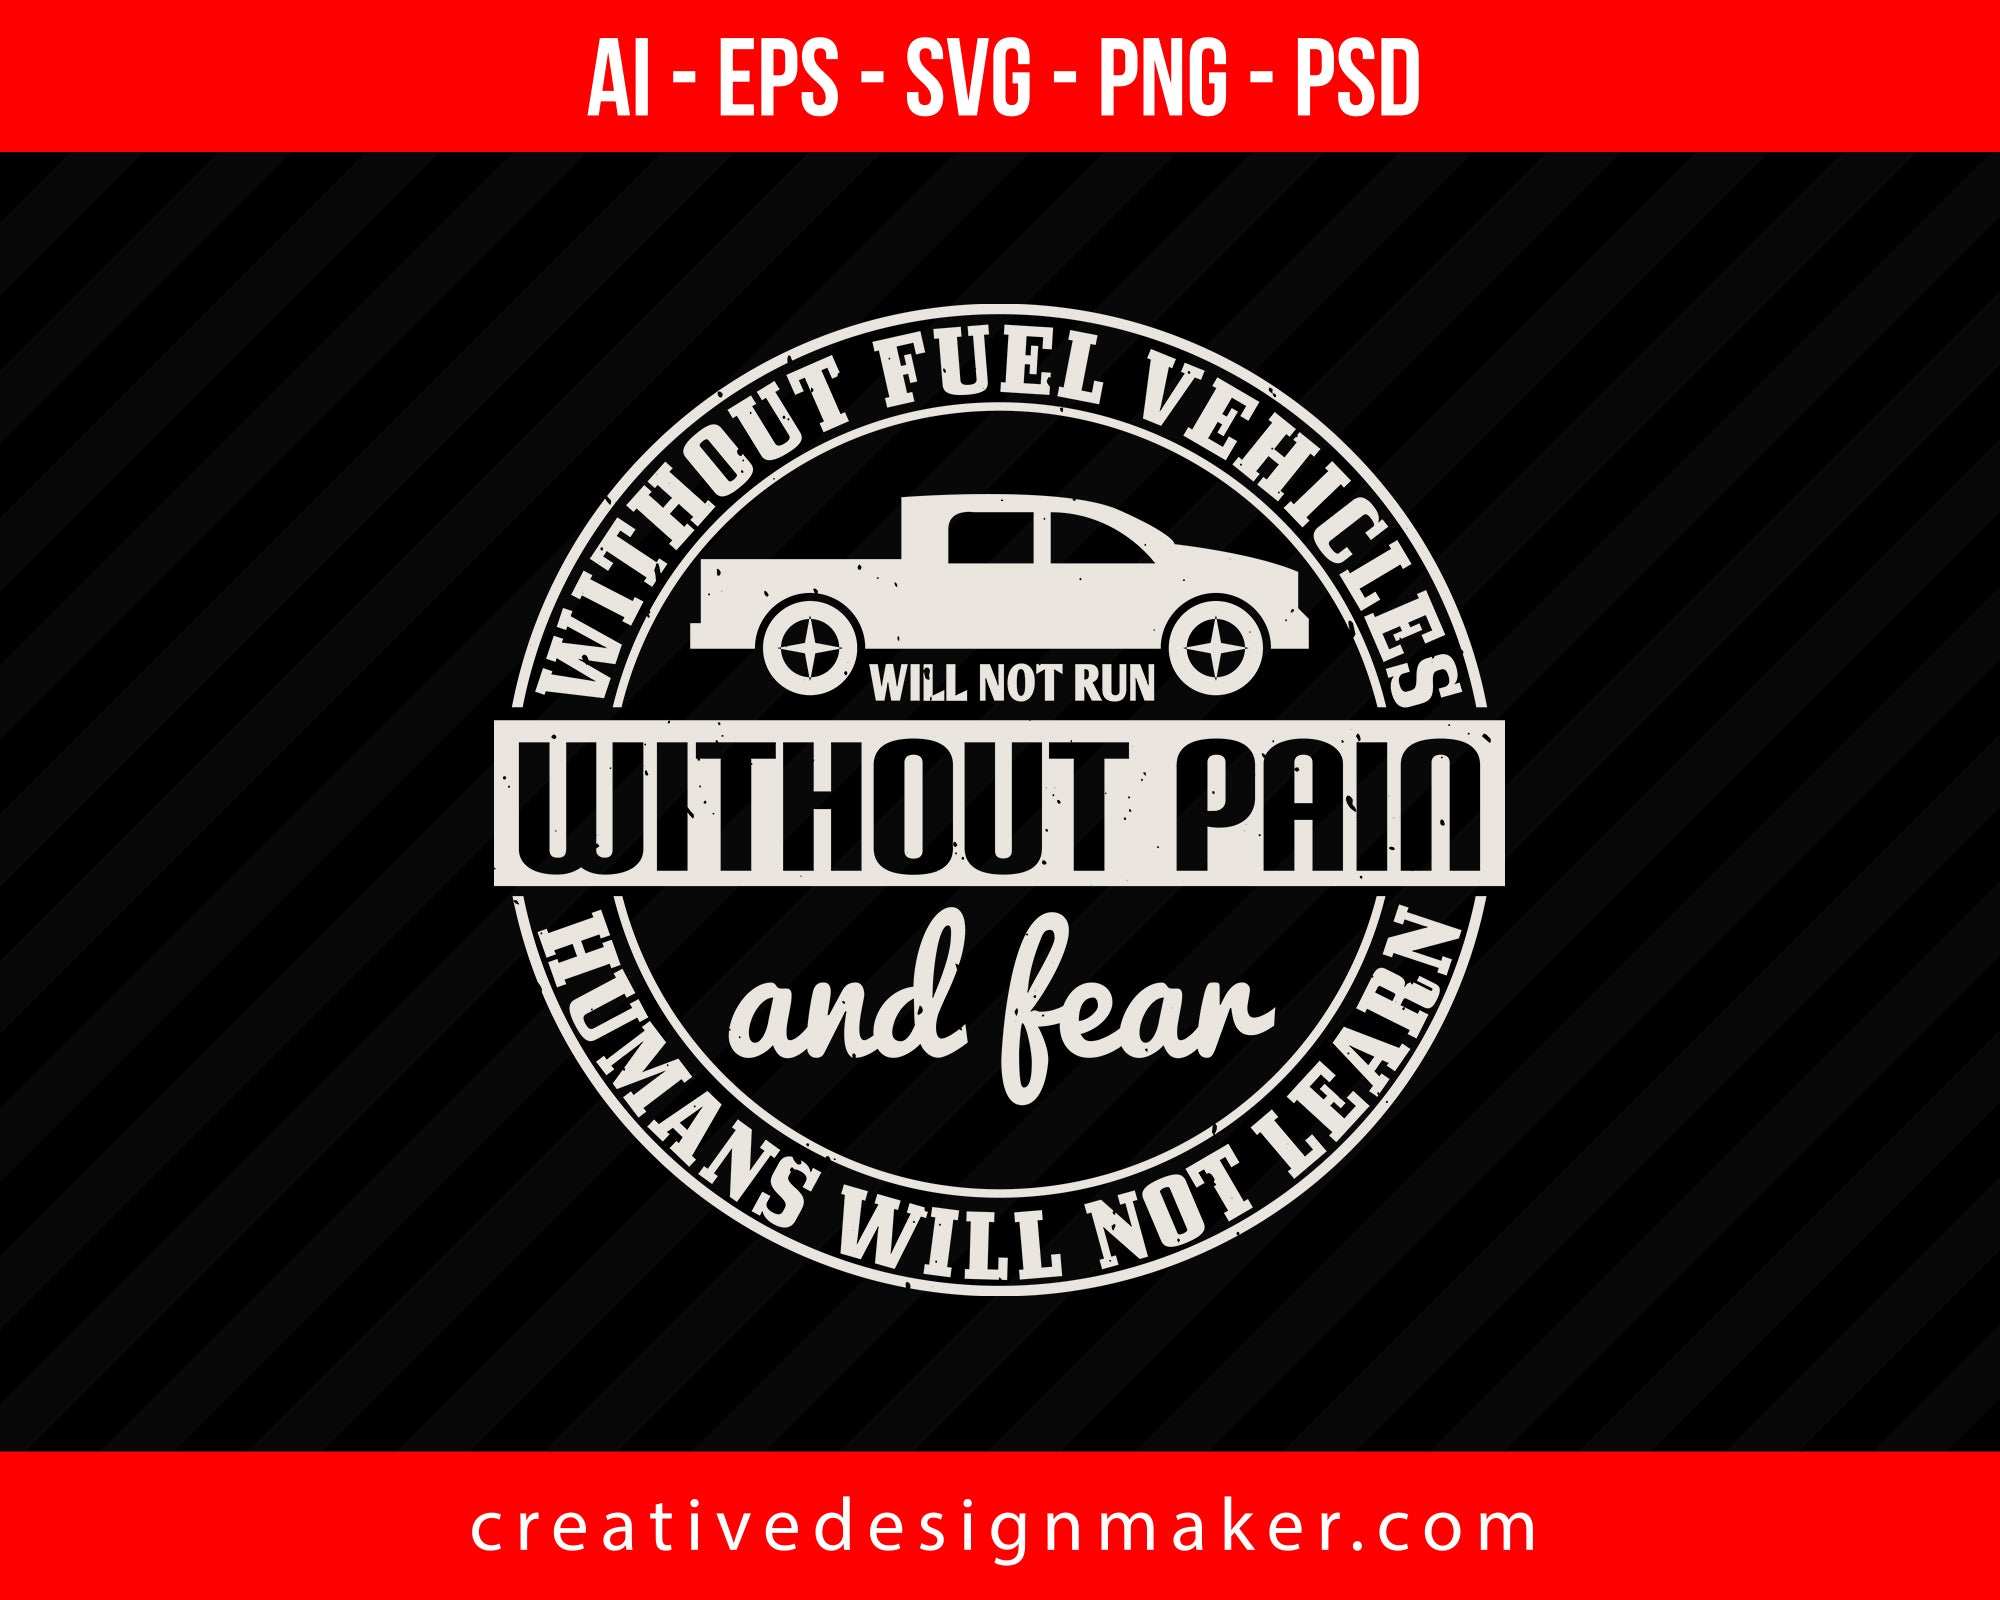 Without fuel vehicles will not run without pain and fear humans will not learn Vehicles Print Ready Editable T-Shirt SVG Design!